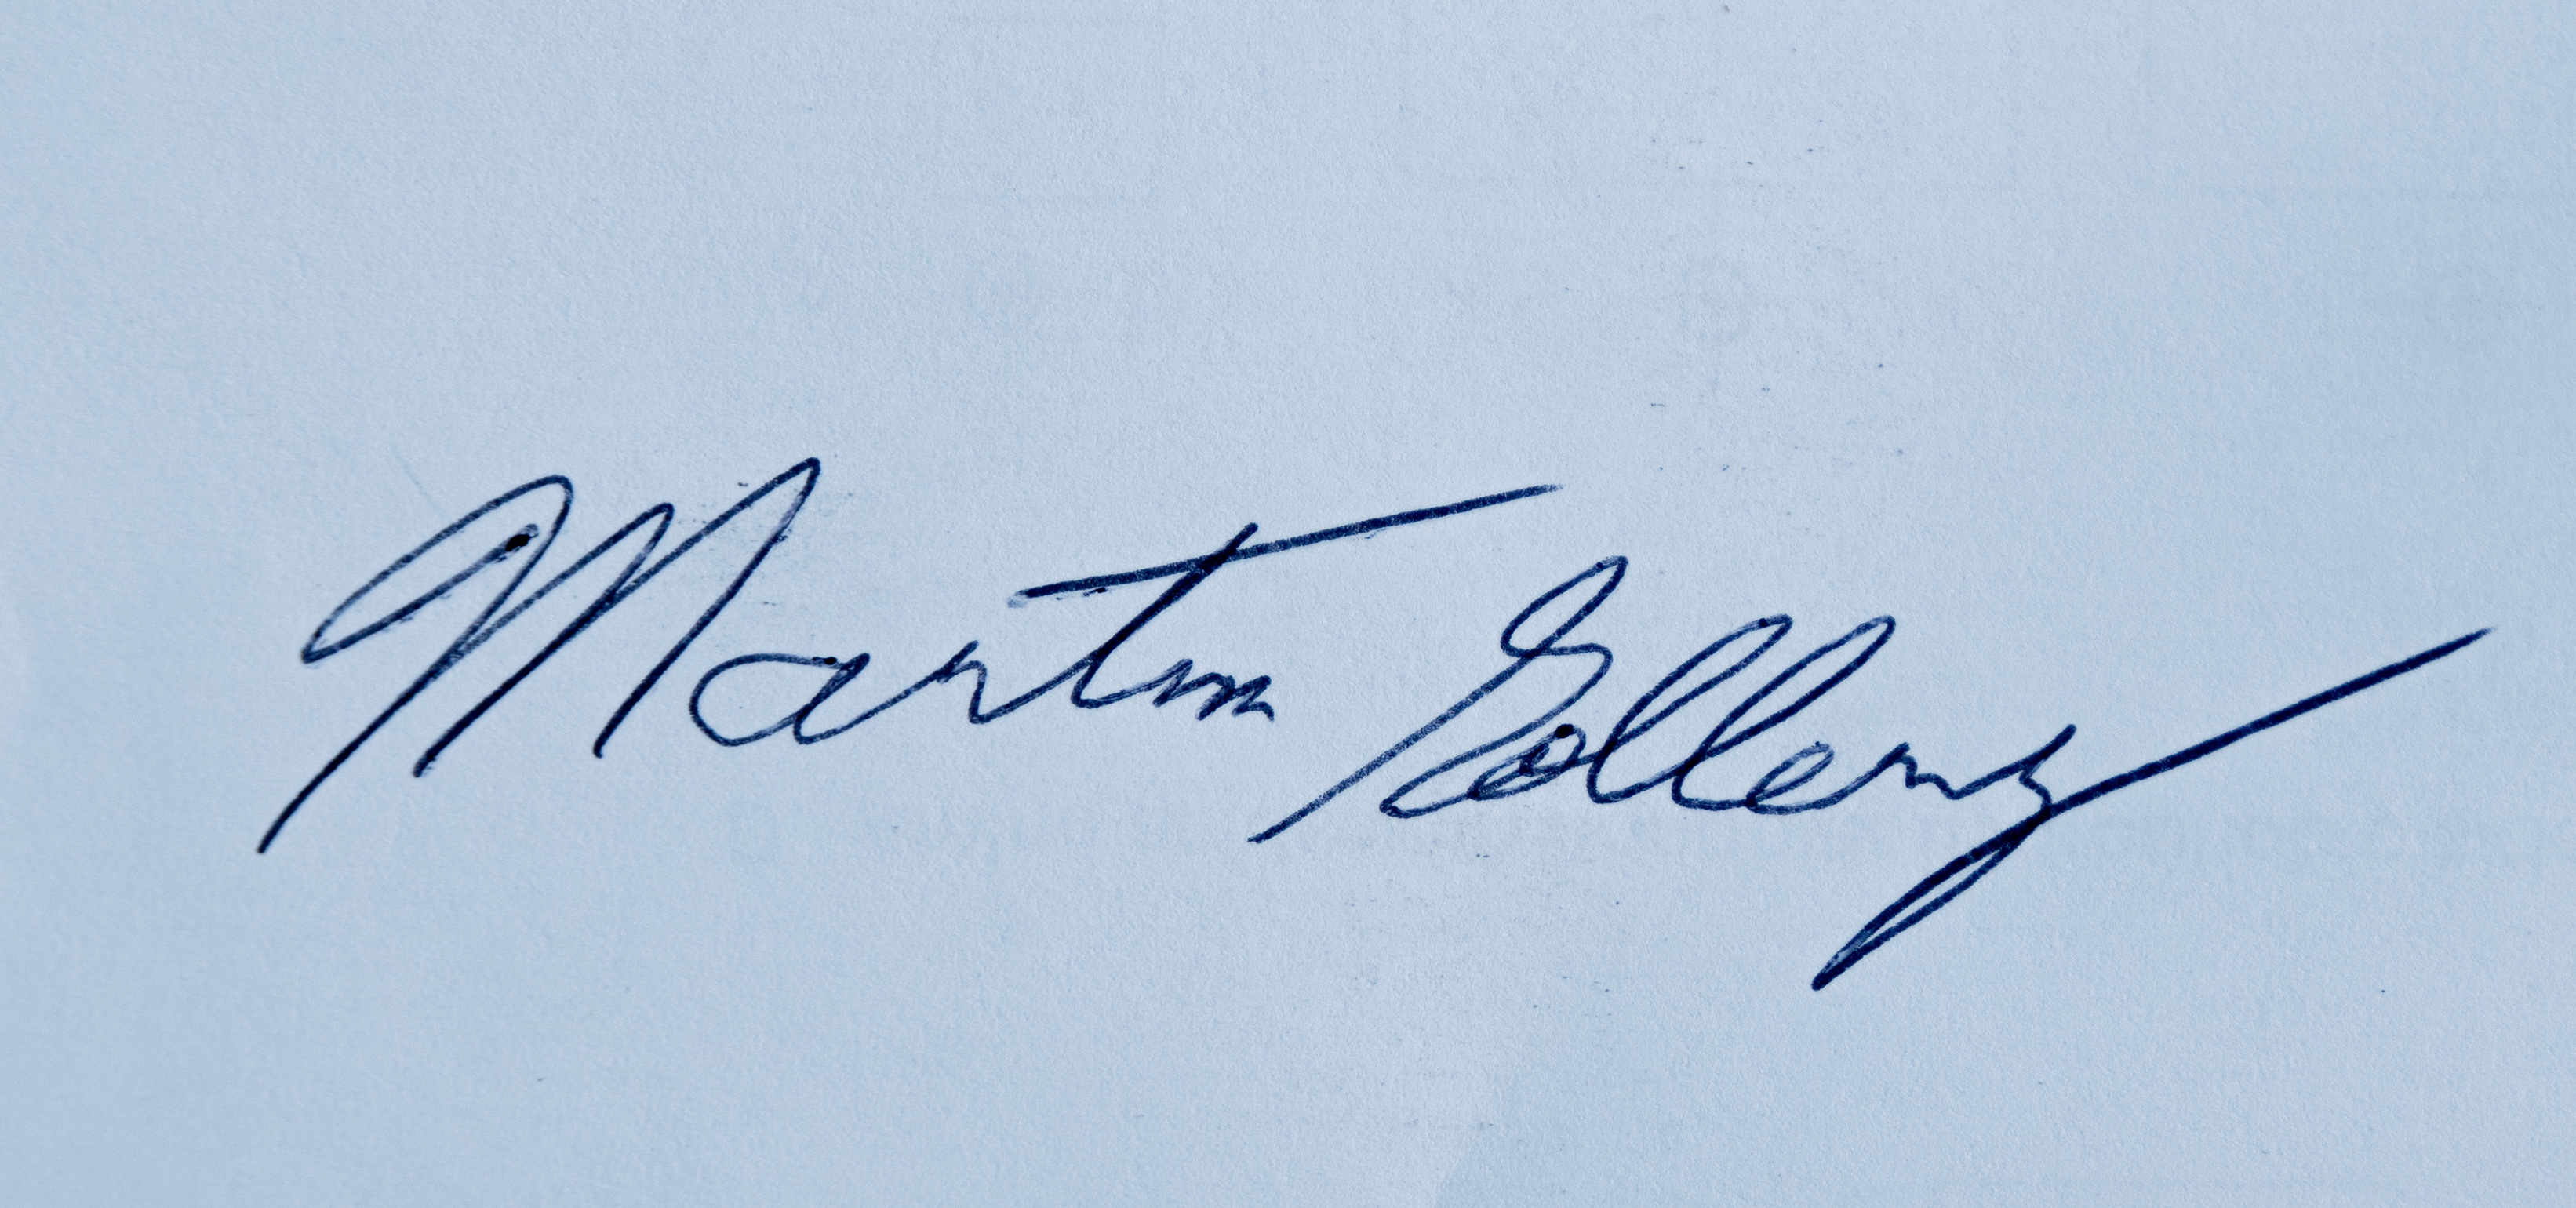 marty.gollery Signature